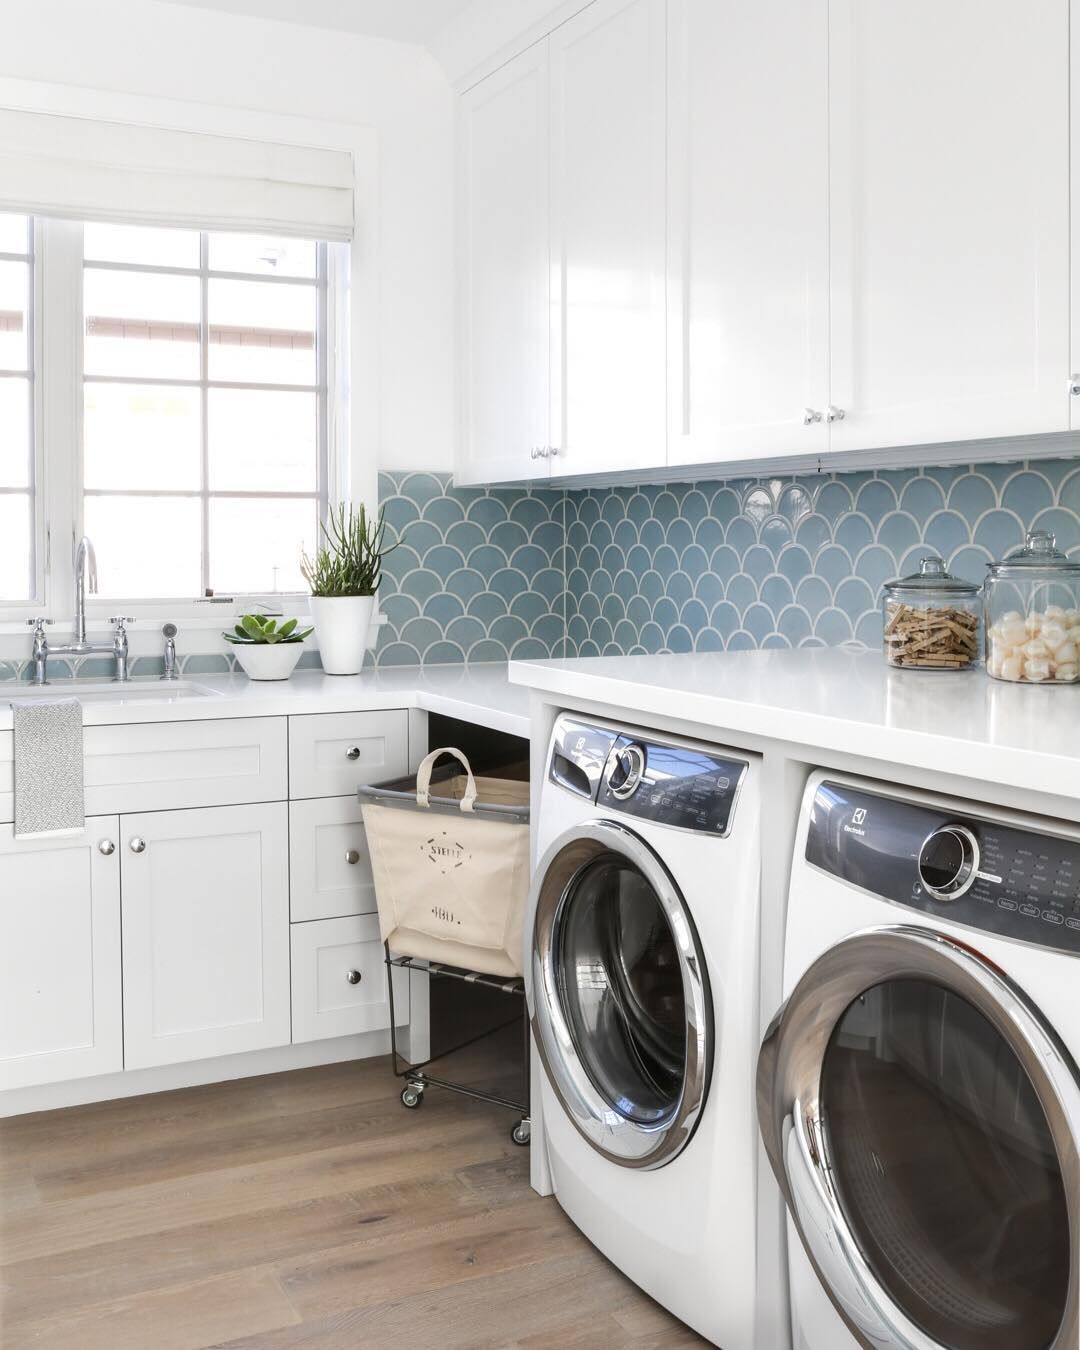 Modern Laundry Room With White Washer And Dryer Light Oak Floors